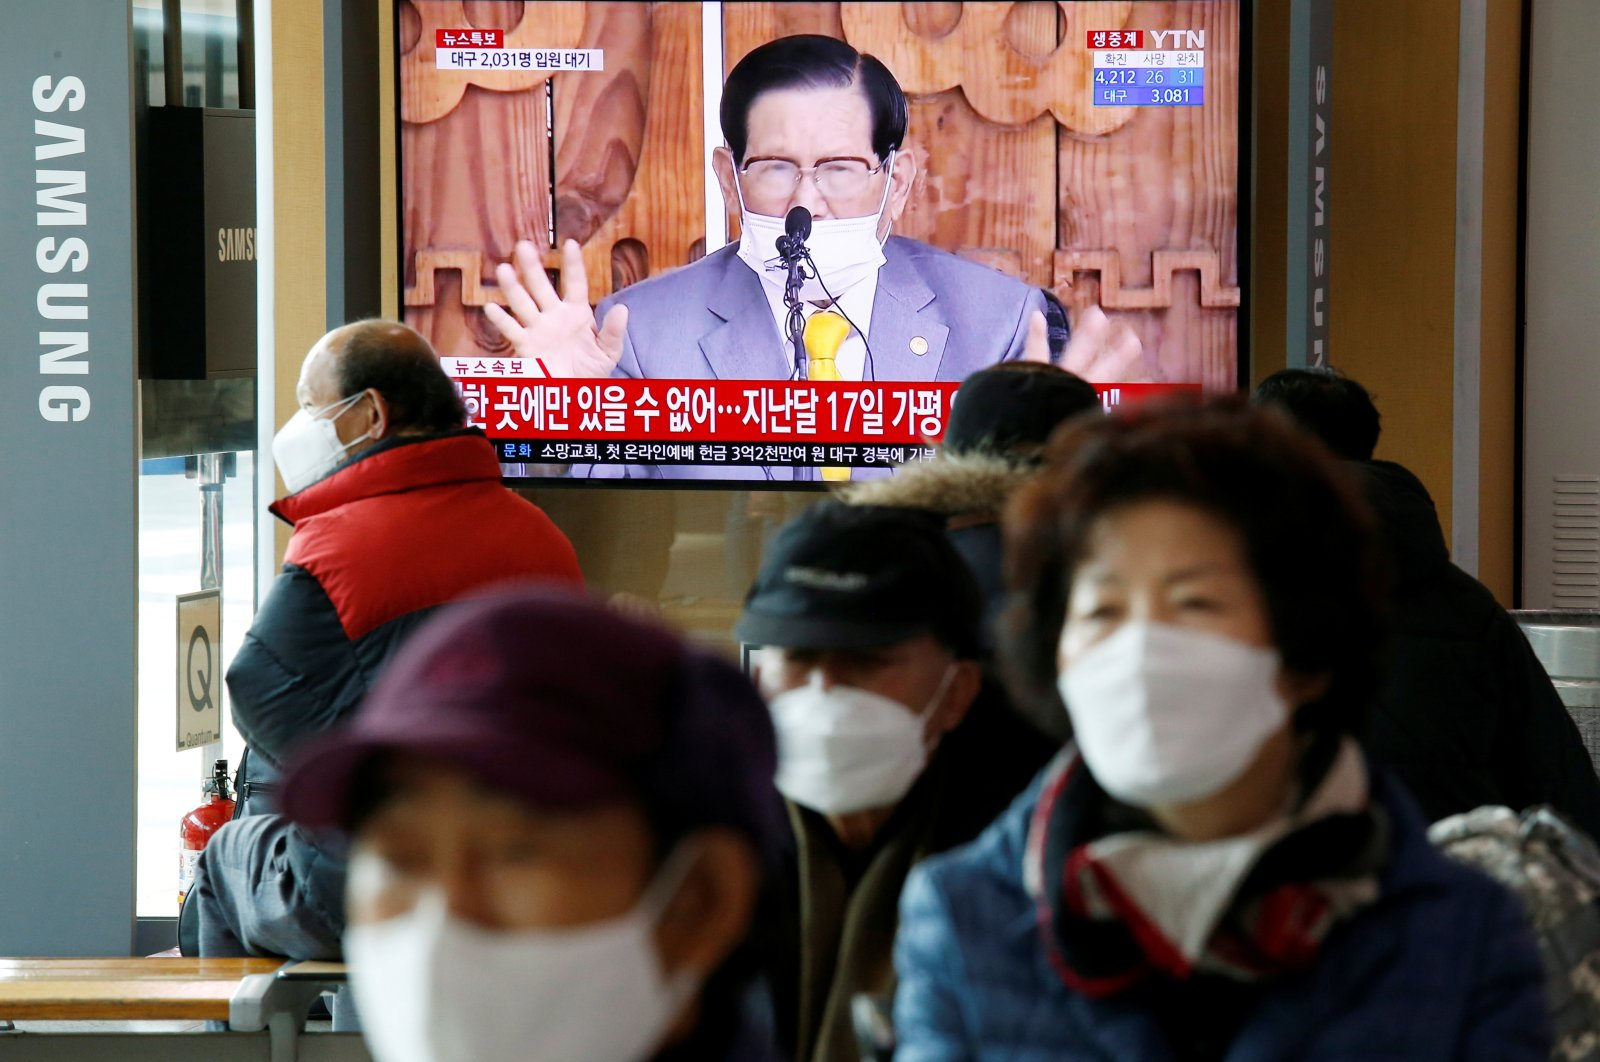 People watch a TV broadcasting a report on a news conference held by Lee Man-hee, founder of the Shincheonji Church of Jesus the Temple of the Tabernacle of the Testimony, Seoul, March 2, 2020. (REUTERS Photo)